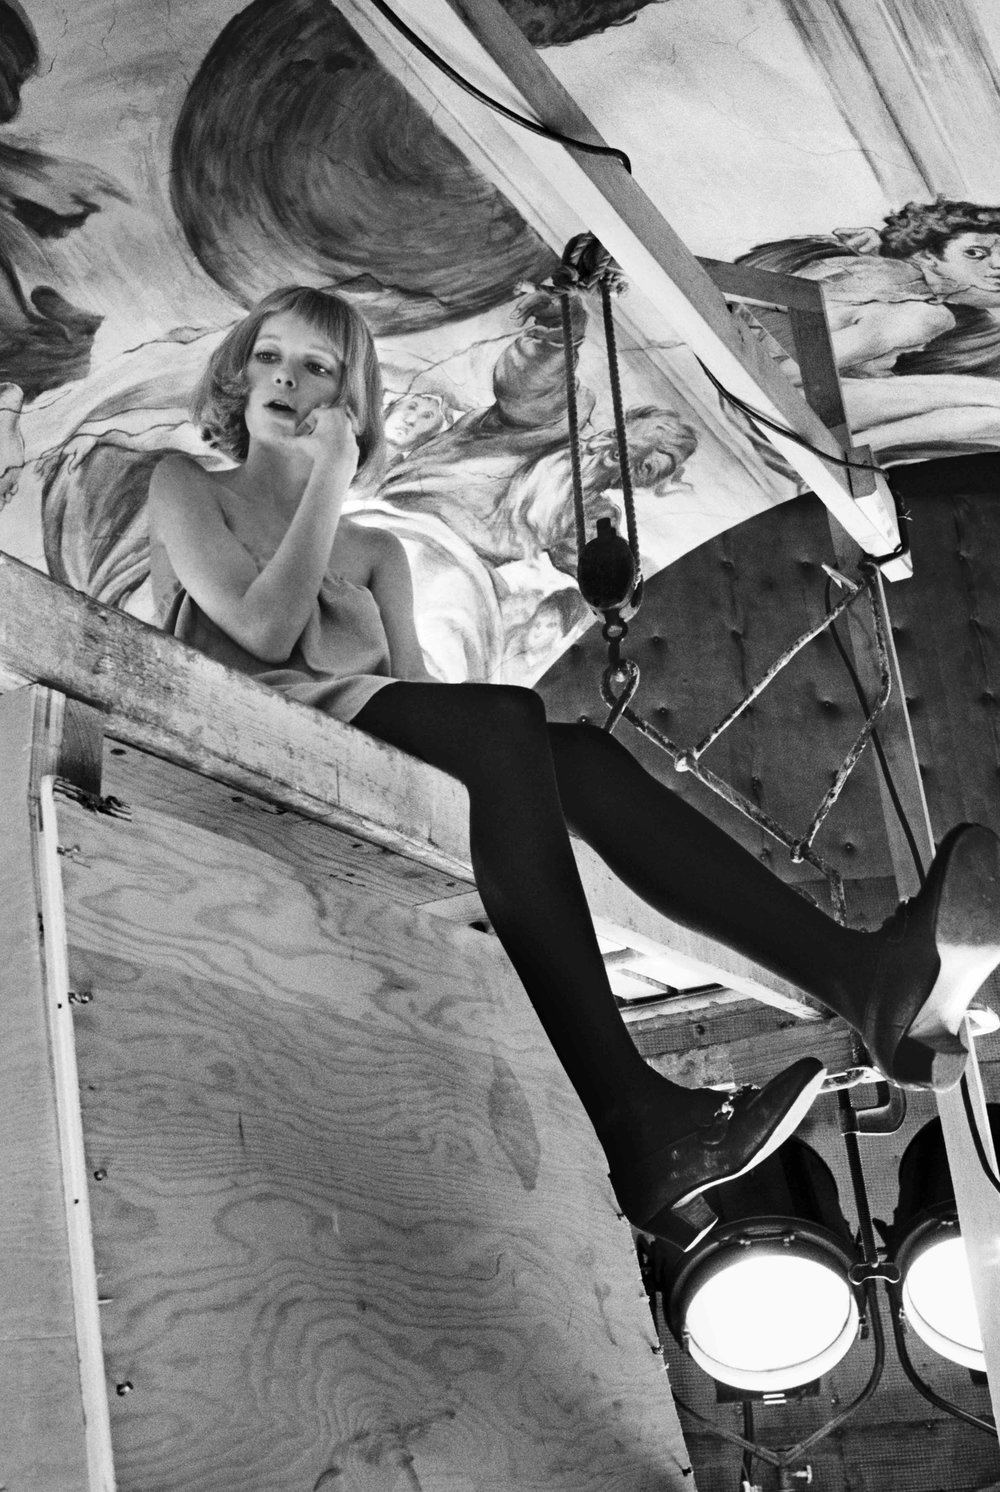 Mia Farrow perched long legged on the scaffolding of Rosemary's Baby during filming at Paramount Studios, 1967